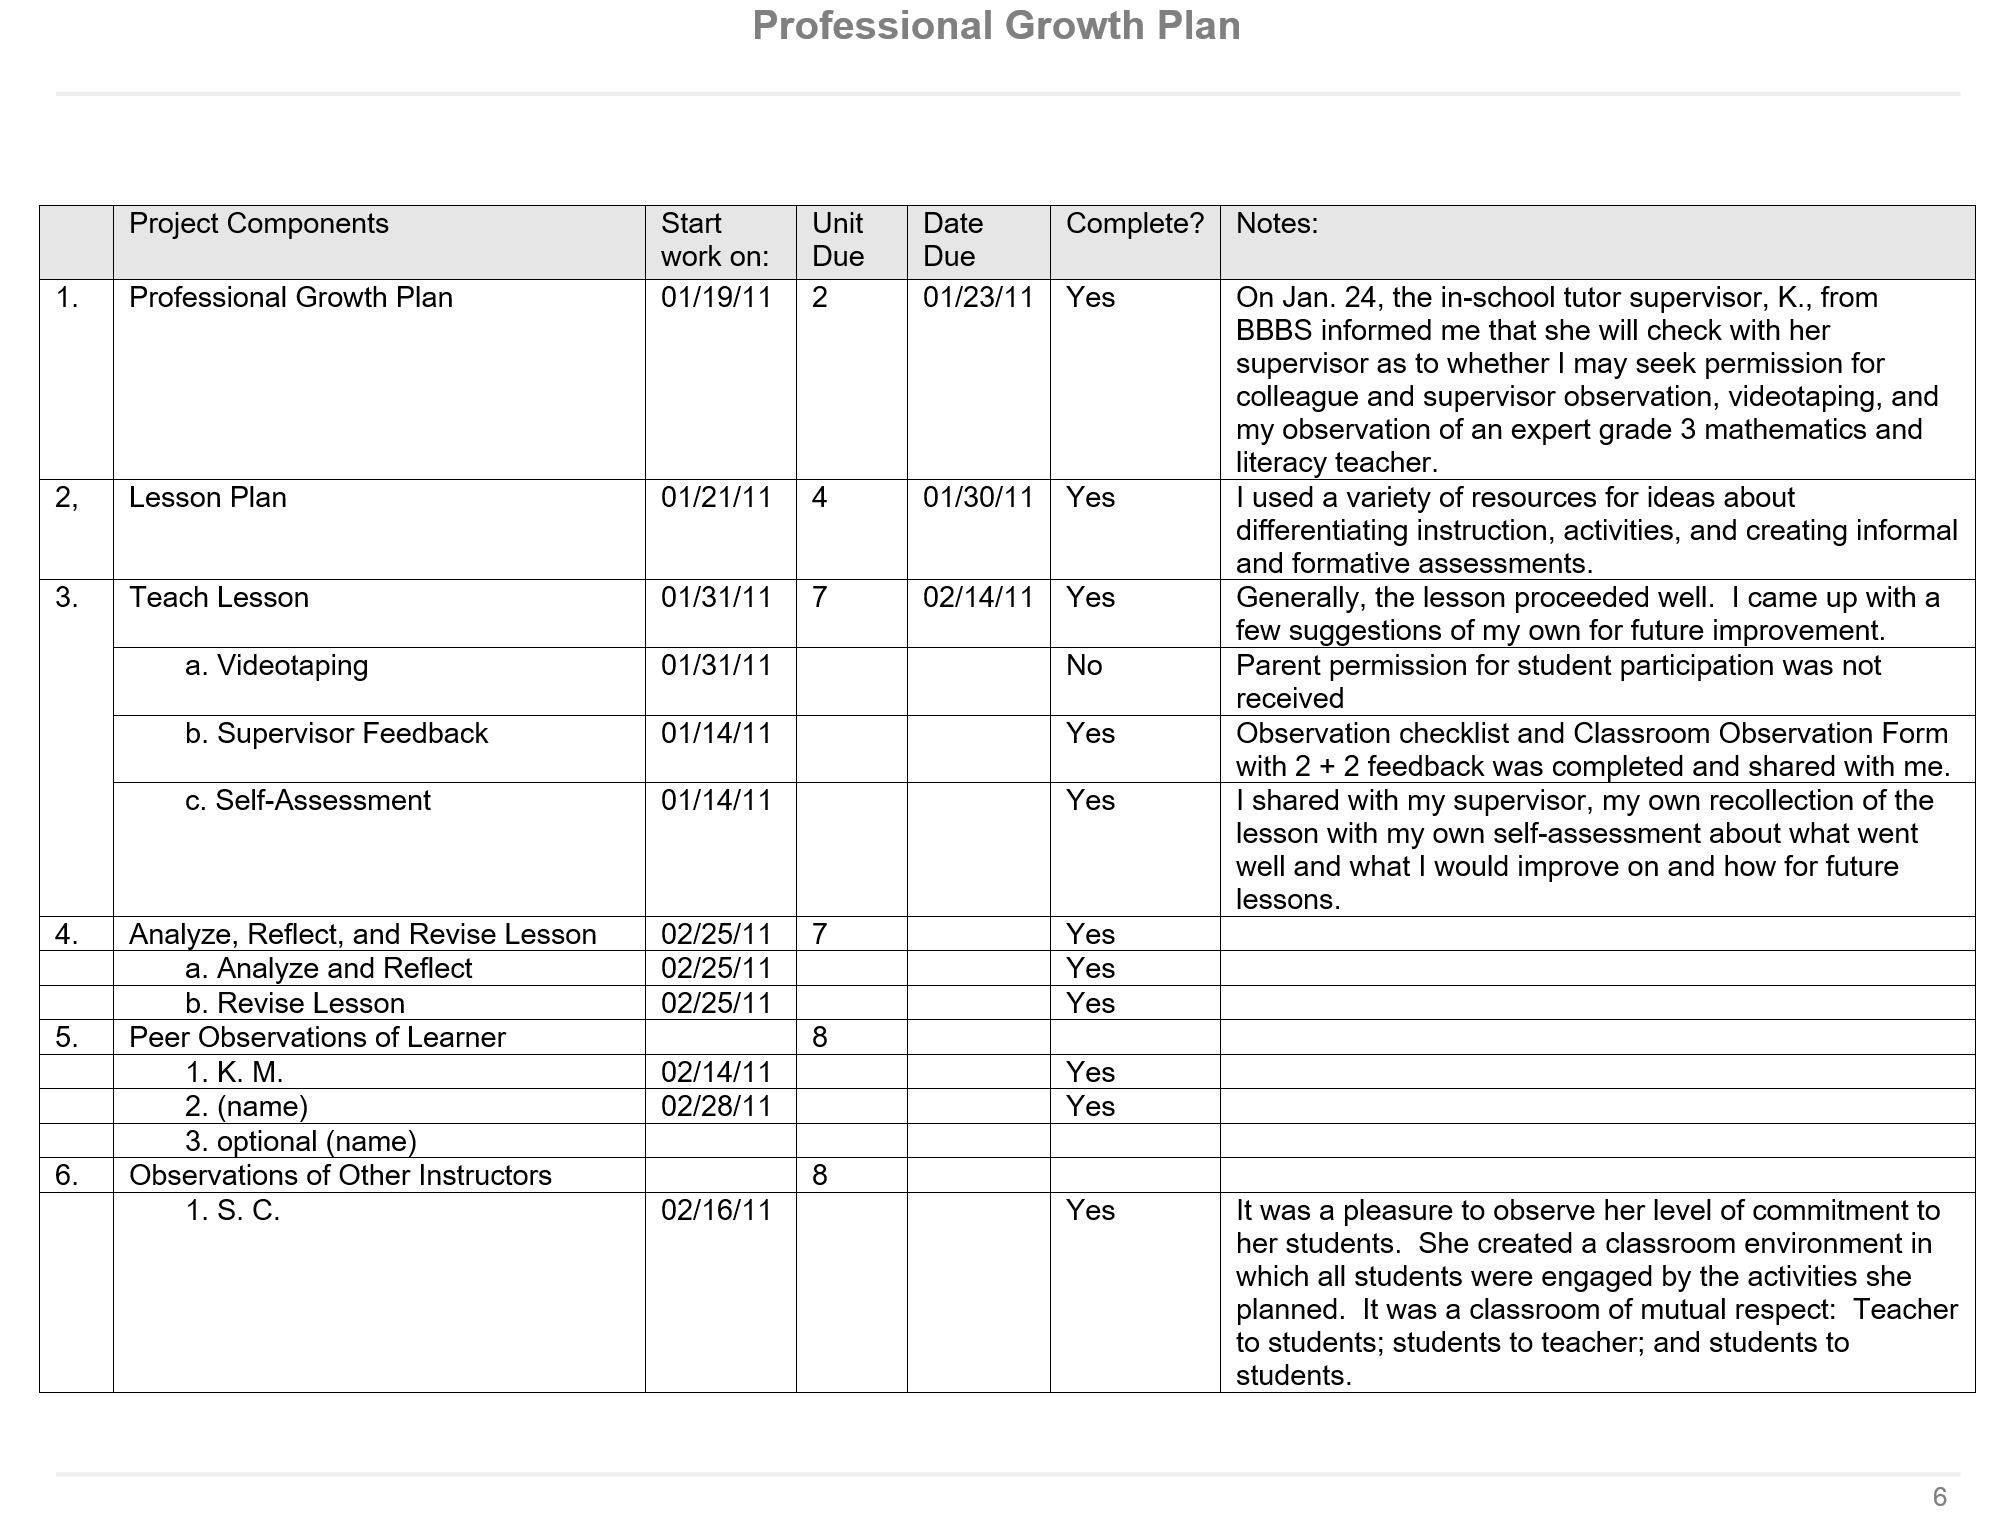 professional growth plan p 6 of 7